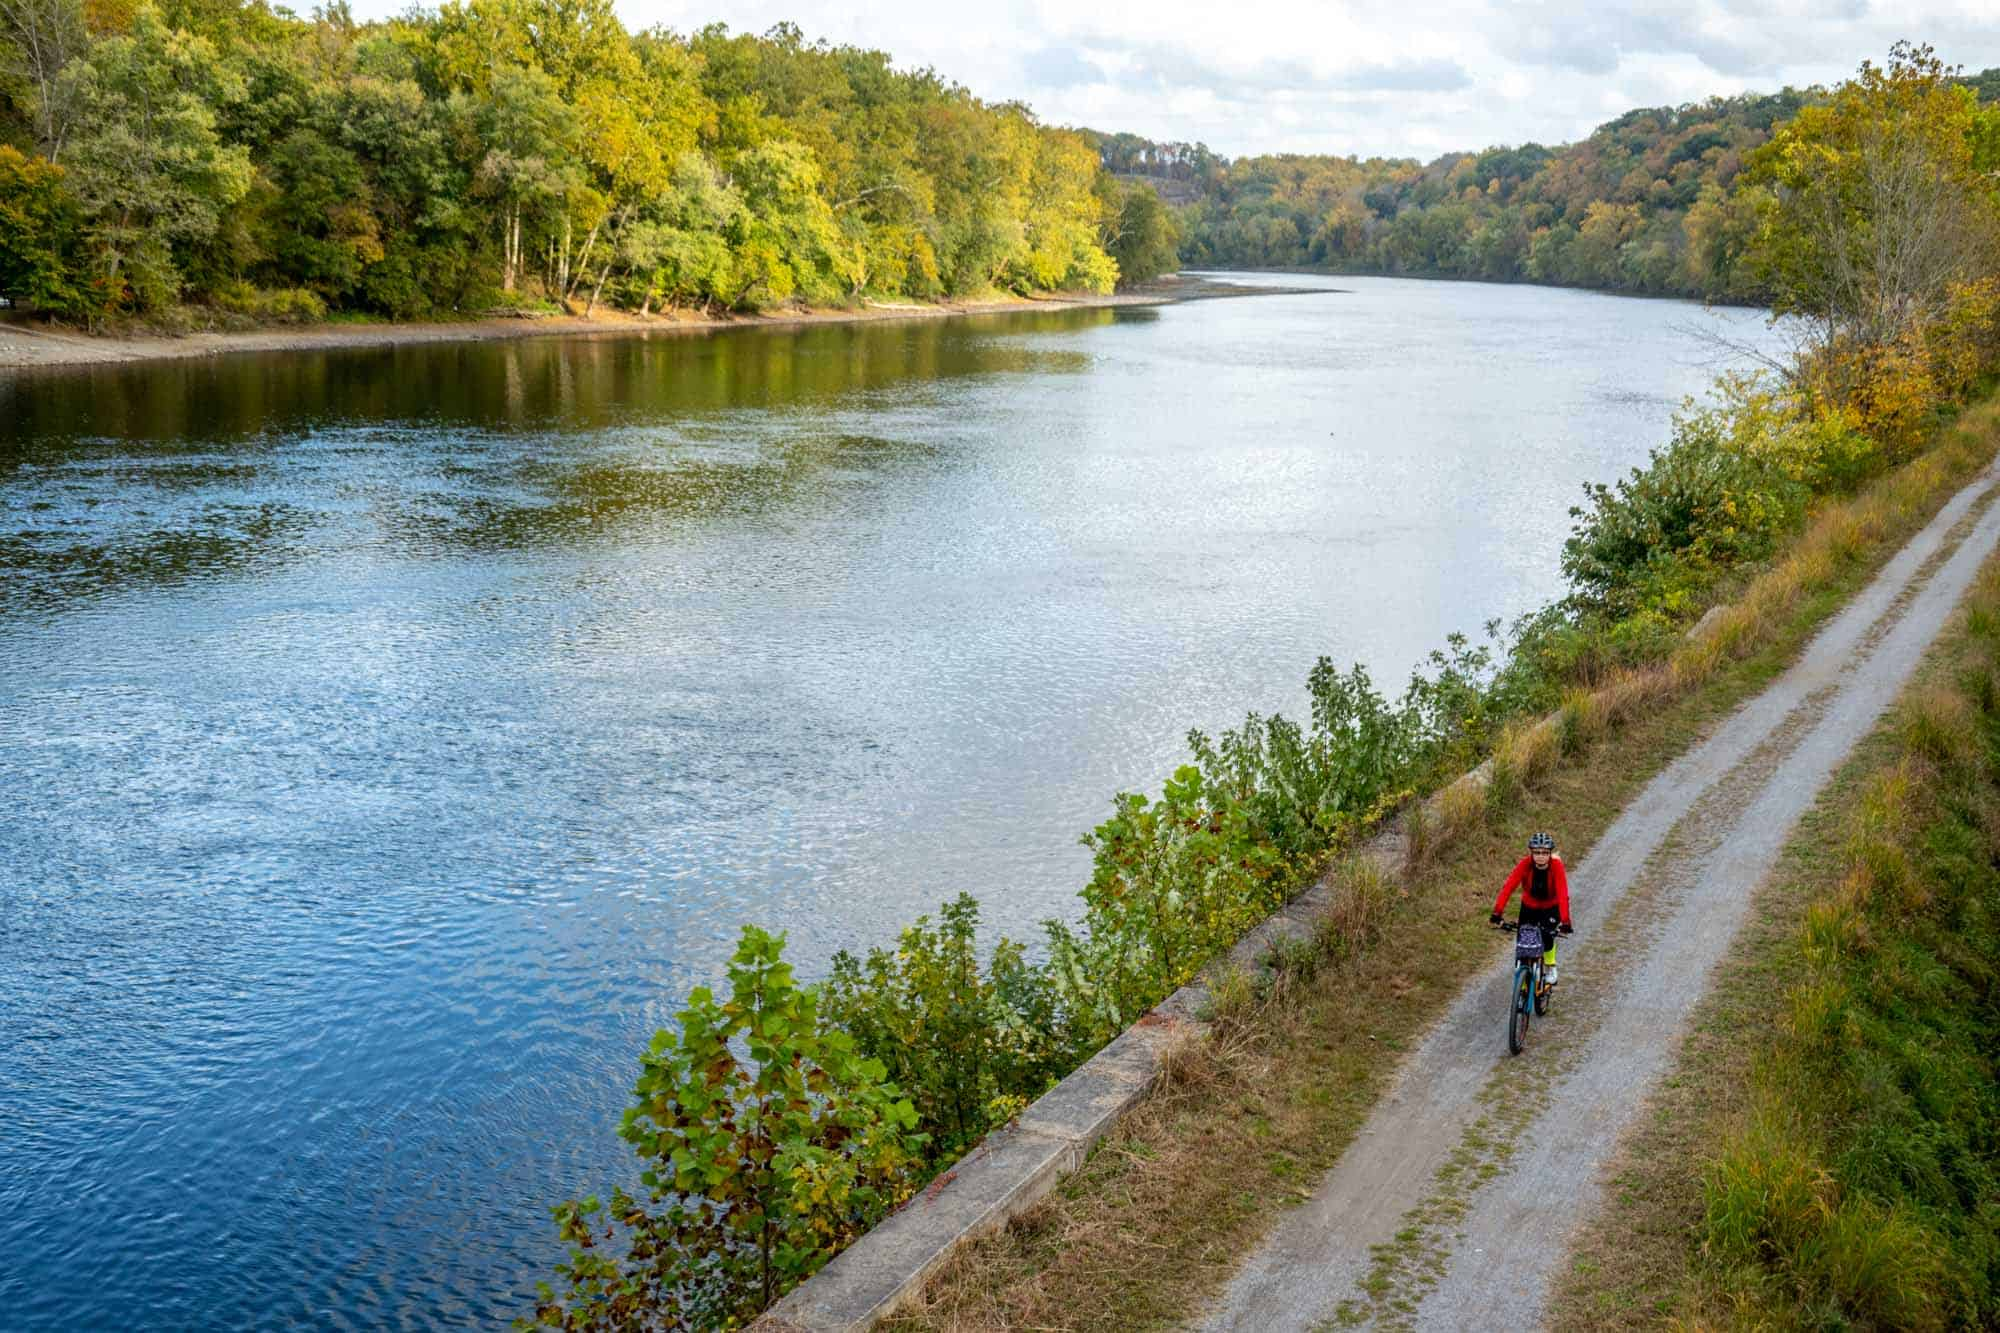 Person in a red jacket bicycling on a path beside a river